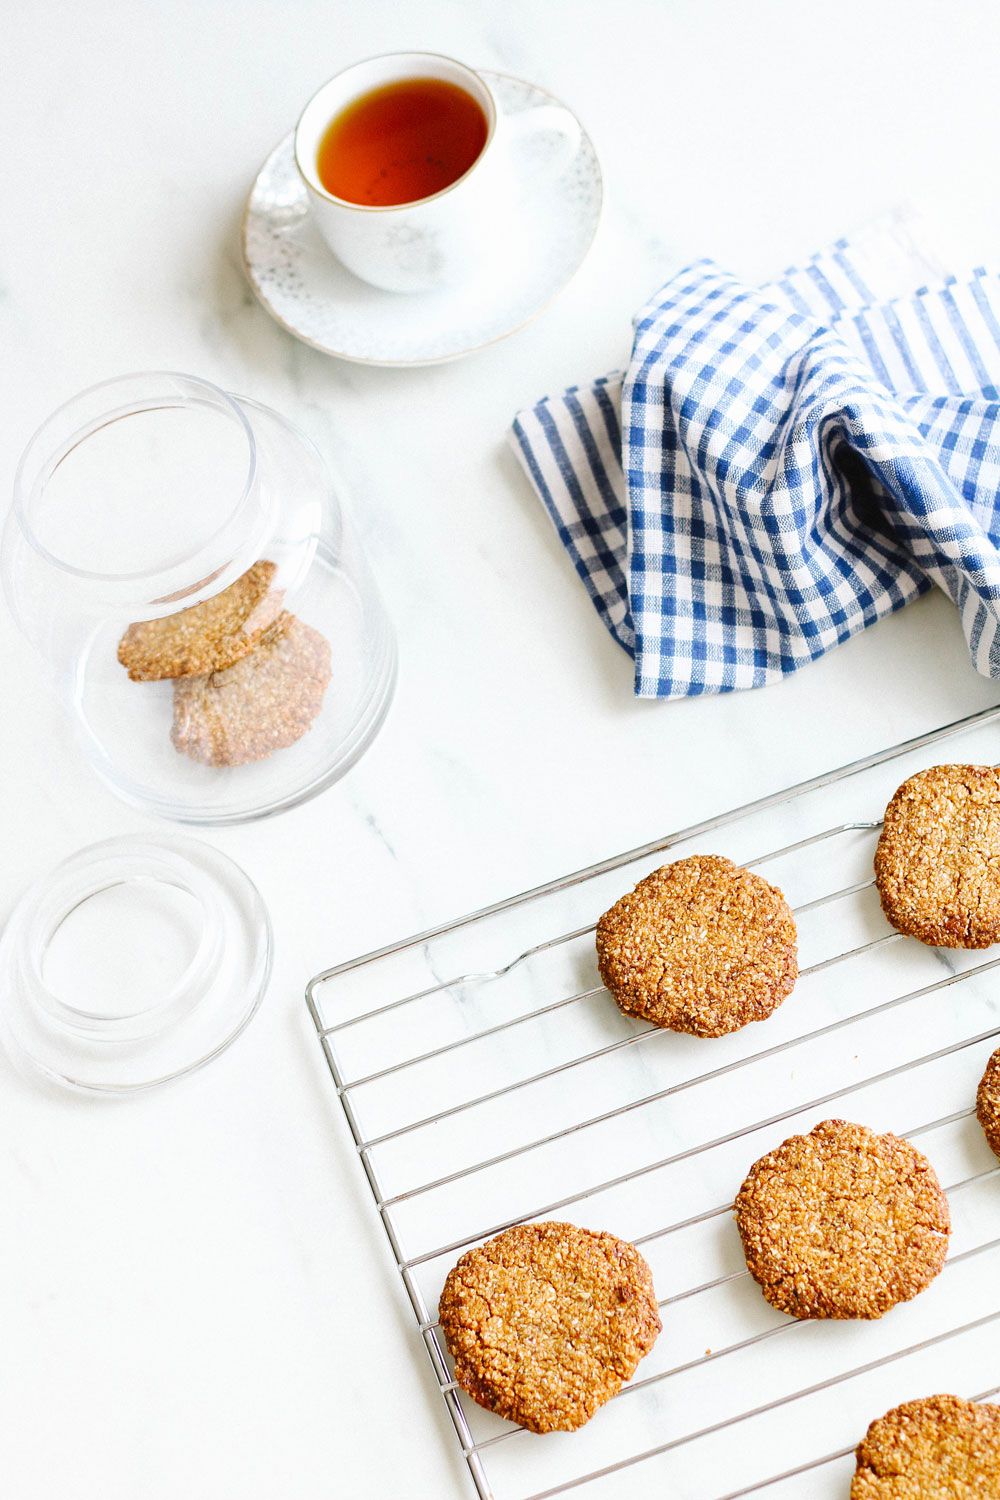 These crispy crunchy melt-in-your-mouth coconut almond cookies, made with healthful ingredients, are perfect for easing your sweet tooth or soothing a mean period craving! https://www.spotebi.com/recipes/crispy-crunchy-melt-in-your-mouth-coconut-almond-cookies/